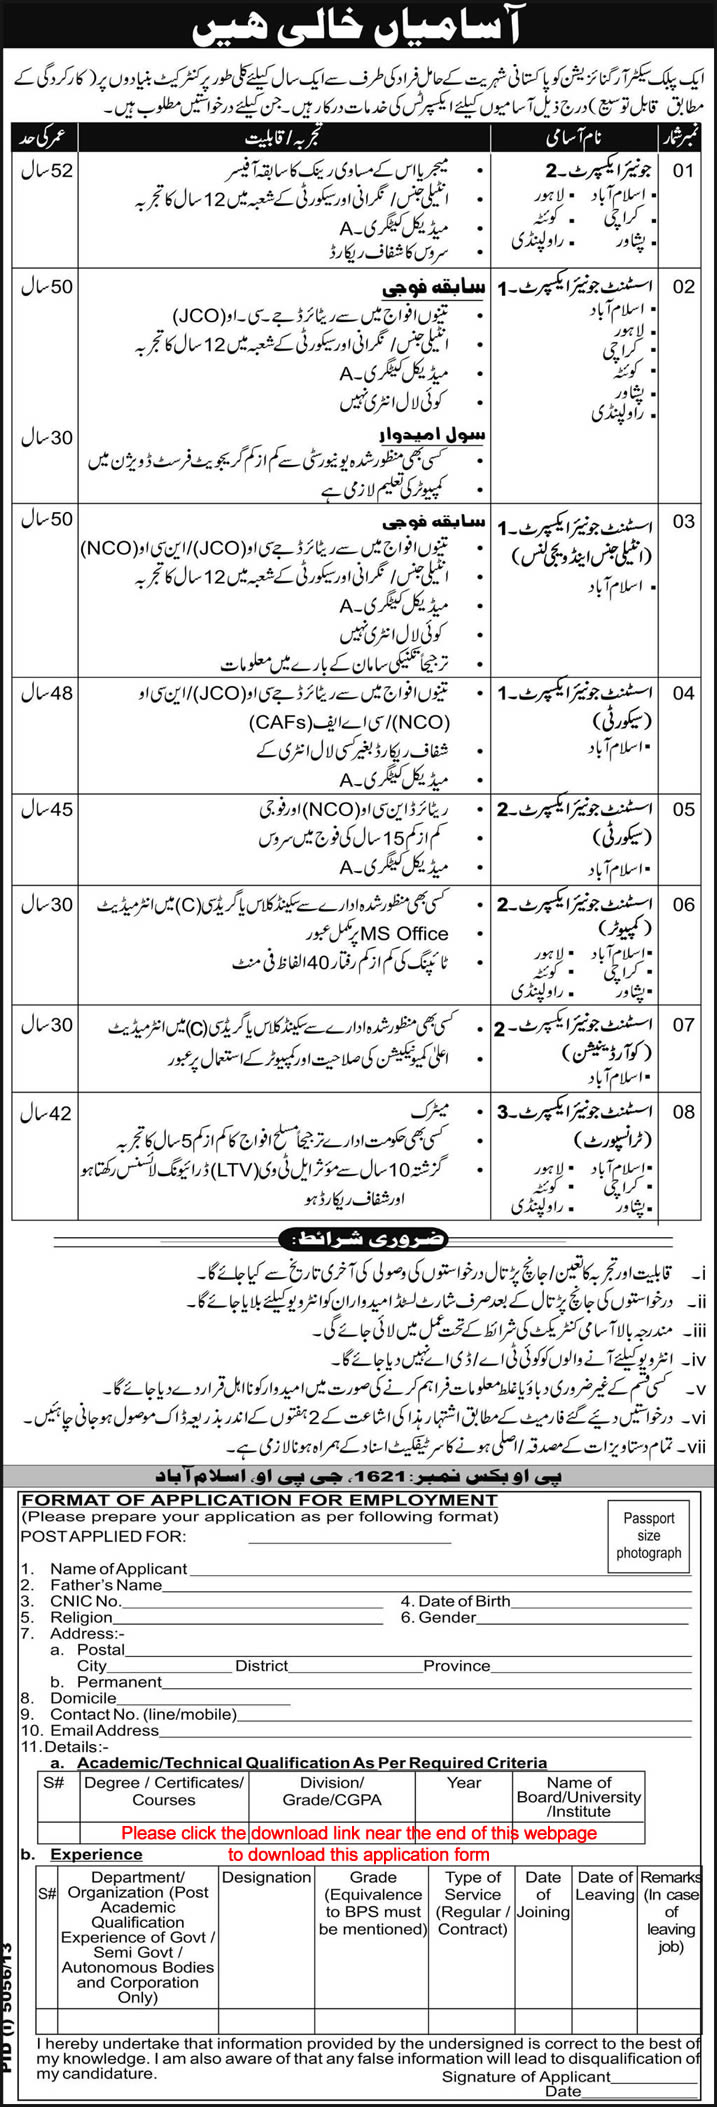 PO Box 1621 GPO Islamabad Jobs 2014 June Application Form